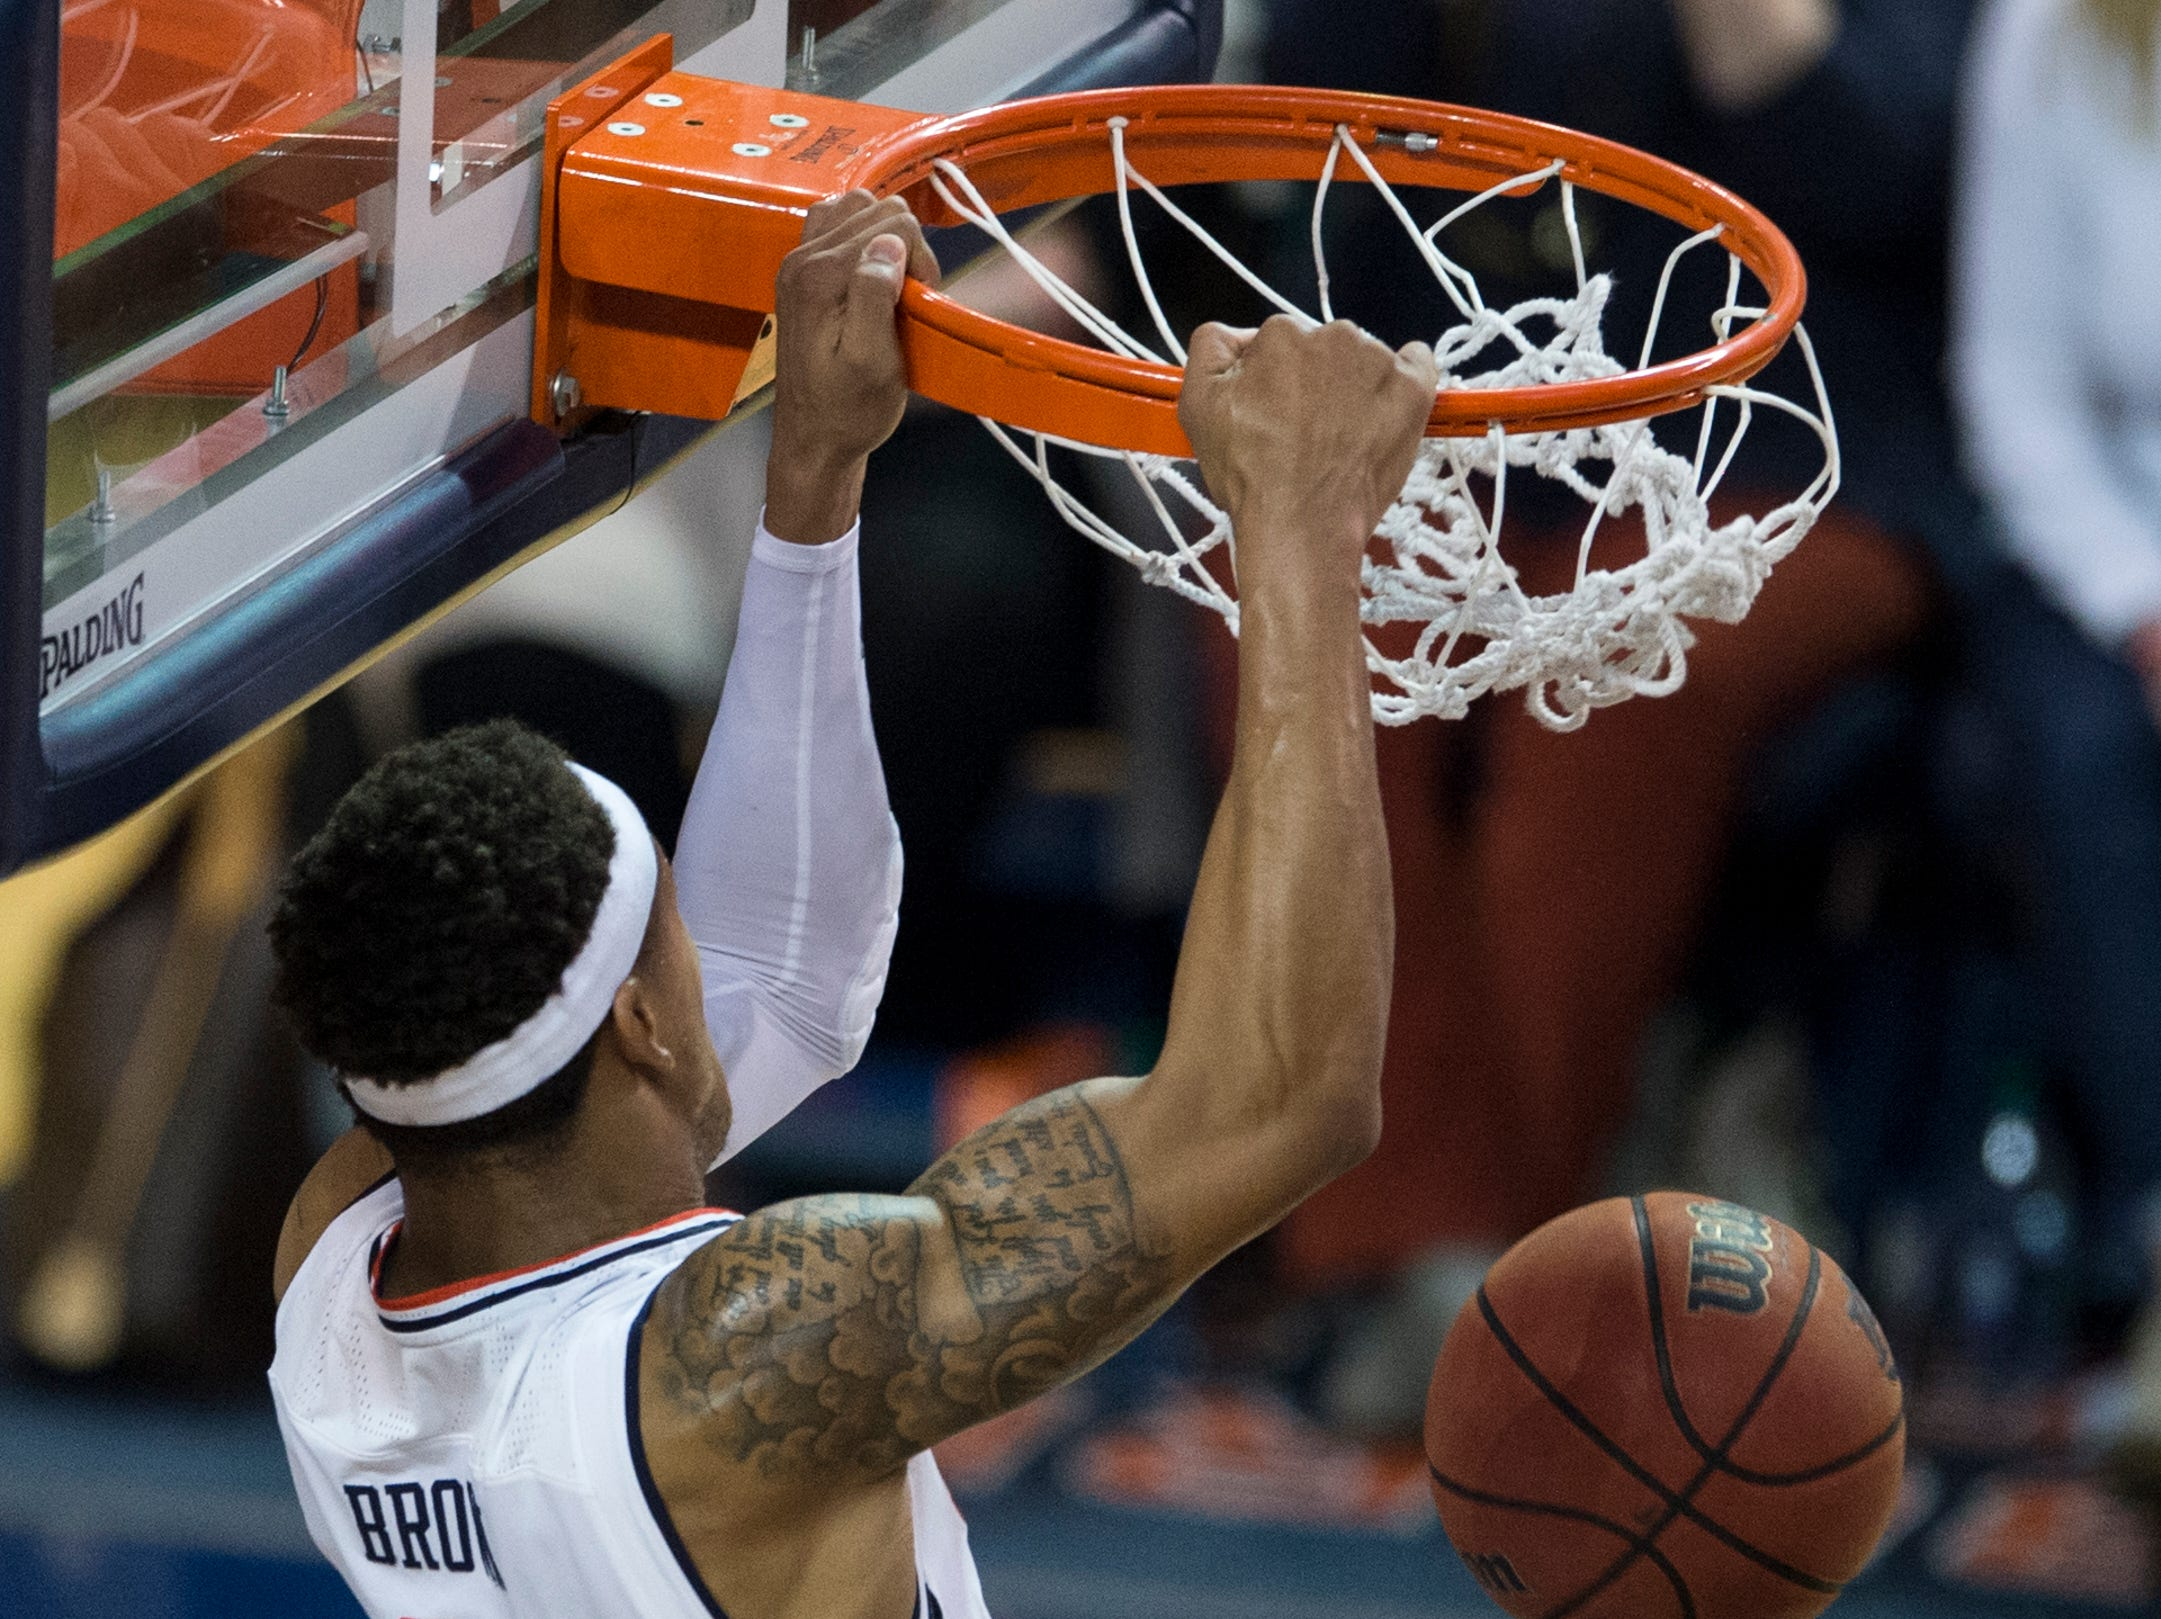 Auburn guard Bryce Brown (2) dunks the ball against Kentucky at Auburn Arena in Auburn, Ala., on Saturday, Jan. 19, 2019. Kentucky defeats Auburn 82-80.